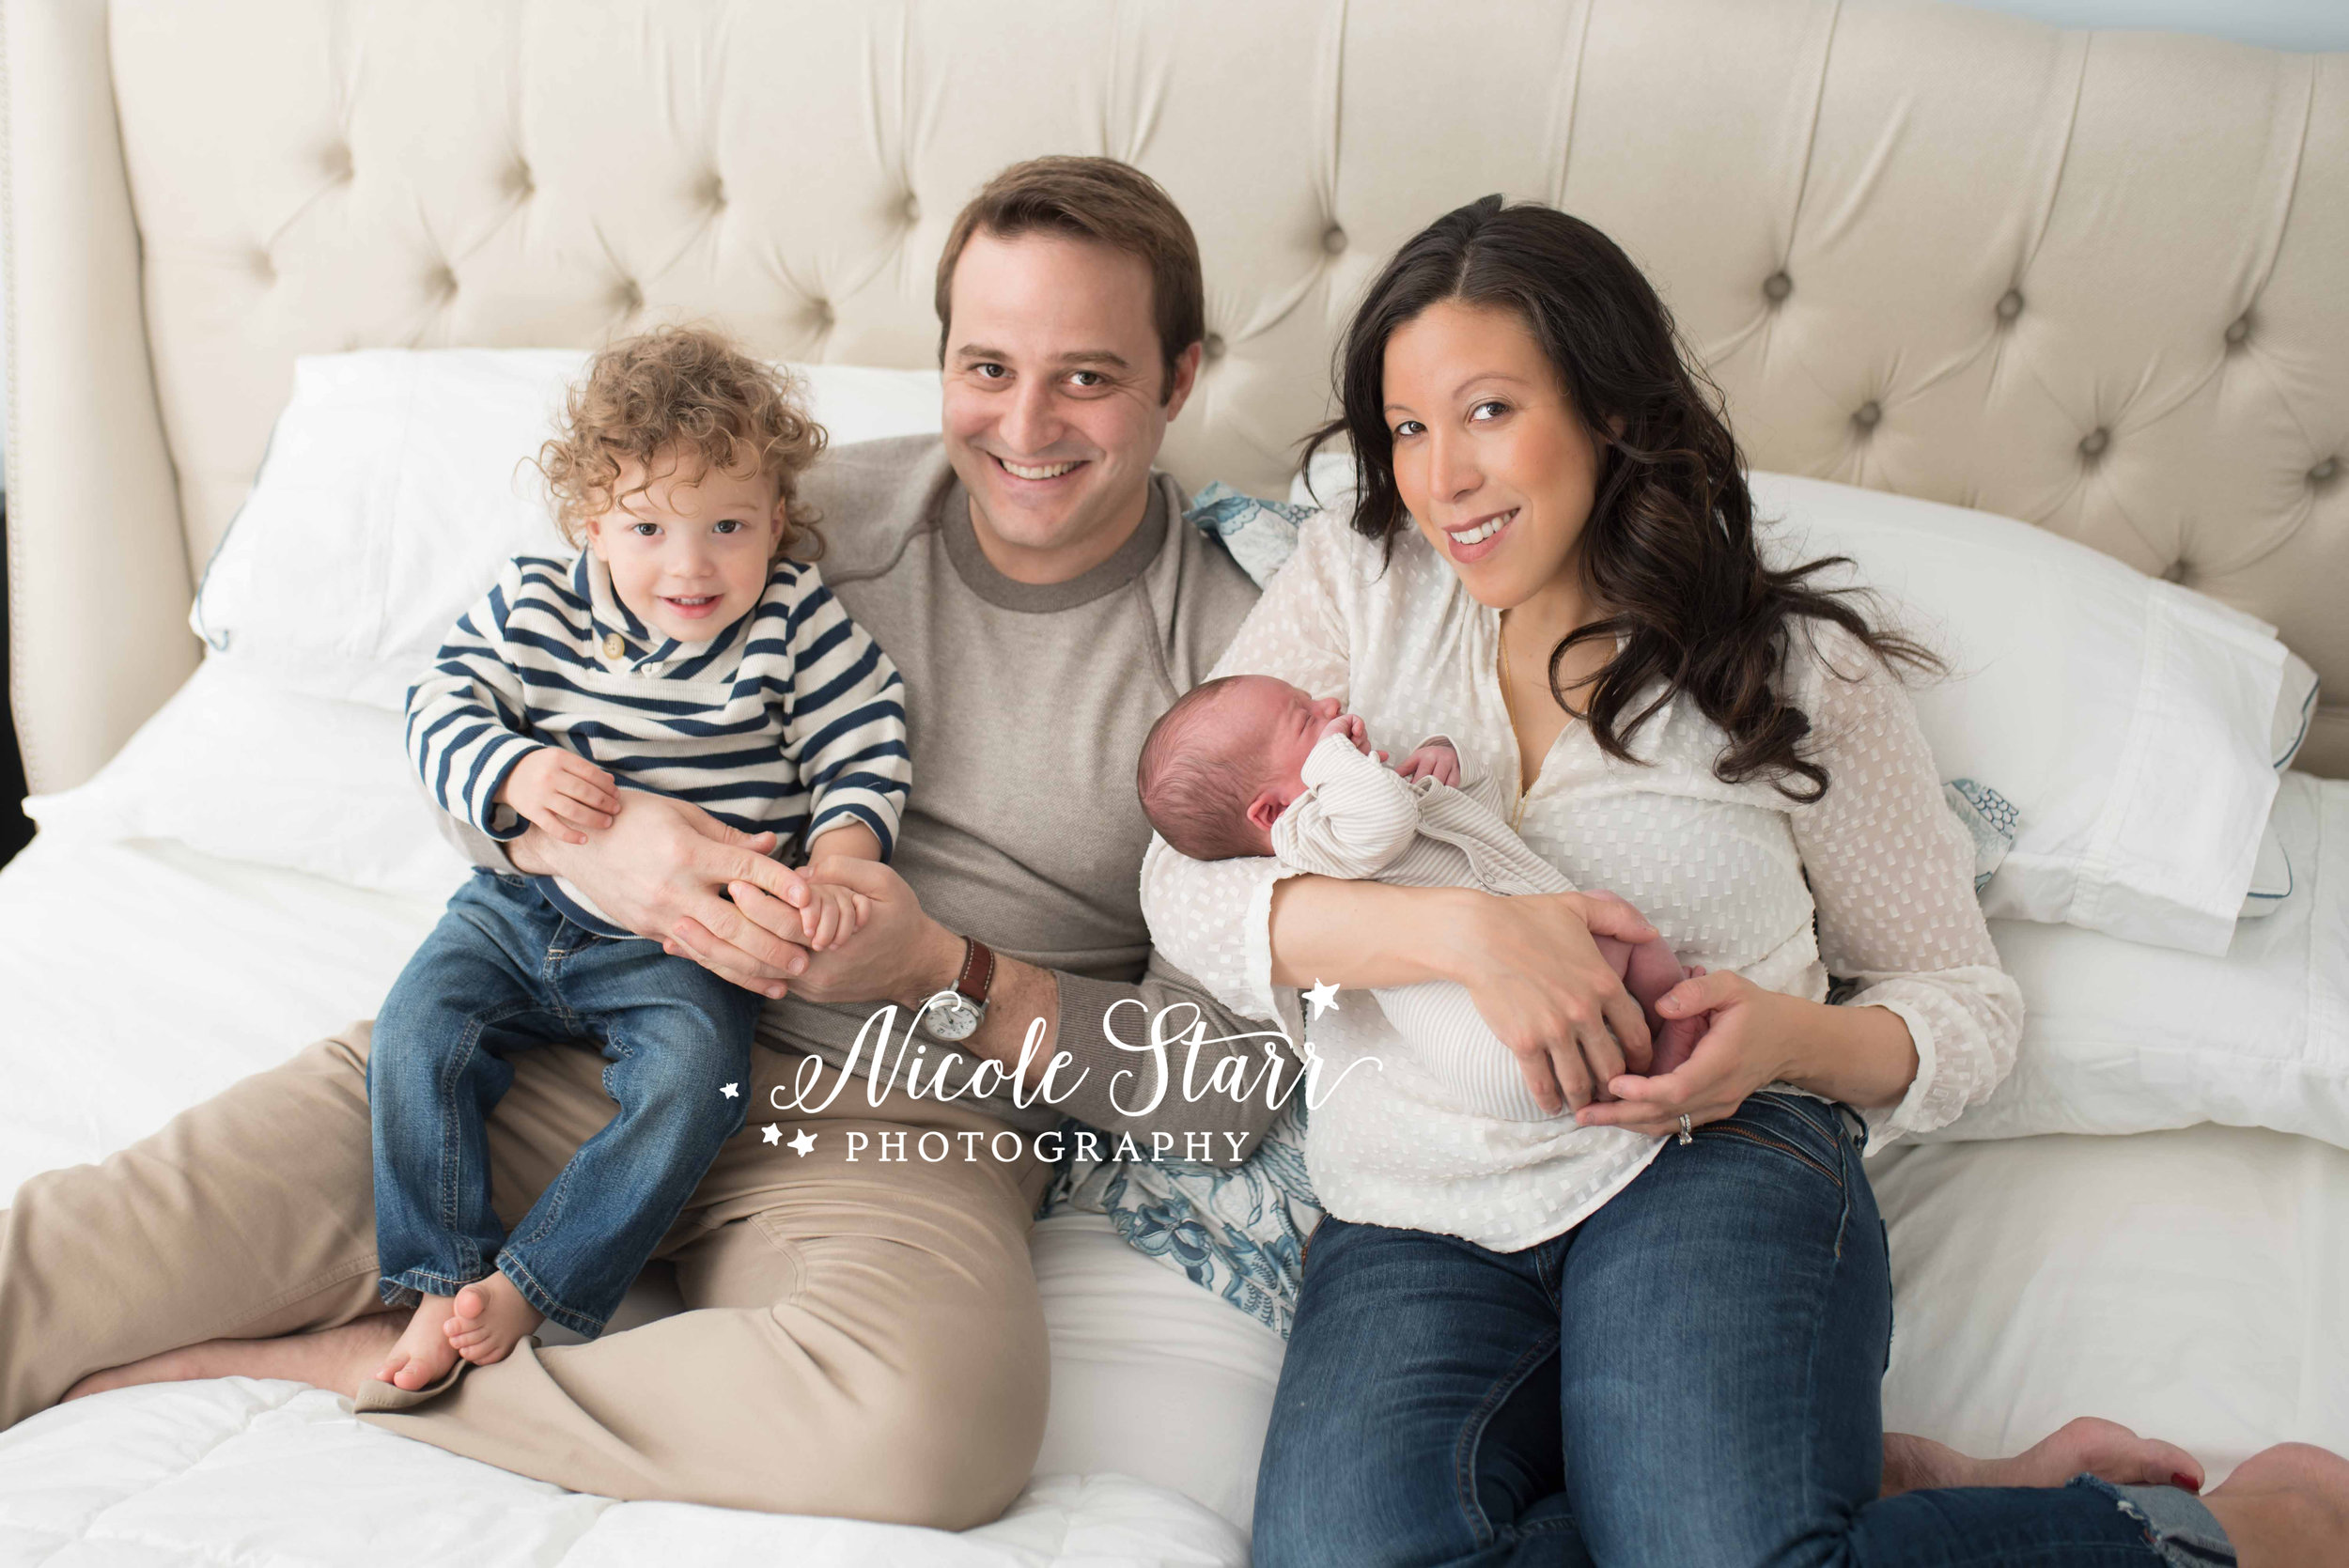 Nicole Starr Photography | Saratoga Springs Newborn Photographer | Boston Newborn Photographer | Saratoga Springs Lifestyle Newborn Photographer | Boston Lifestyle Newborn Photographer